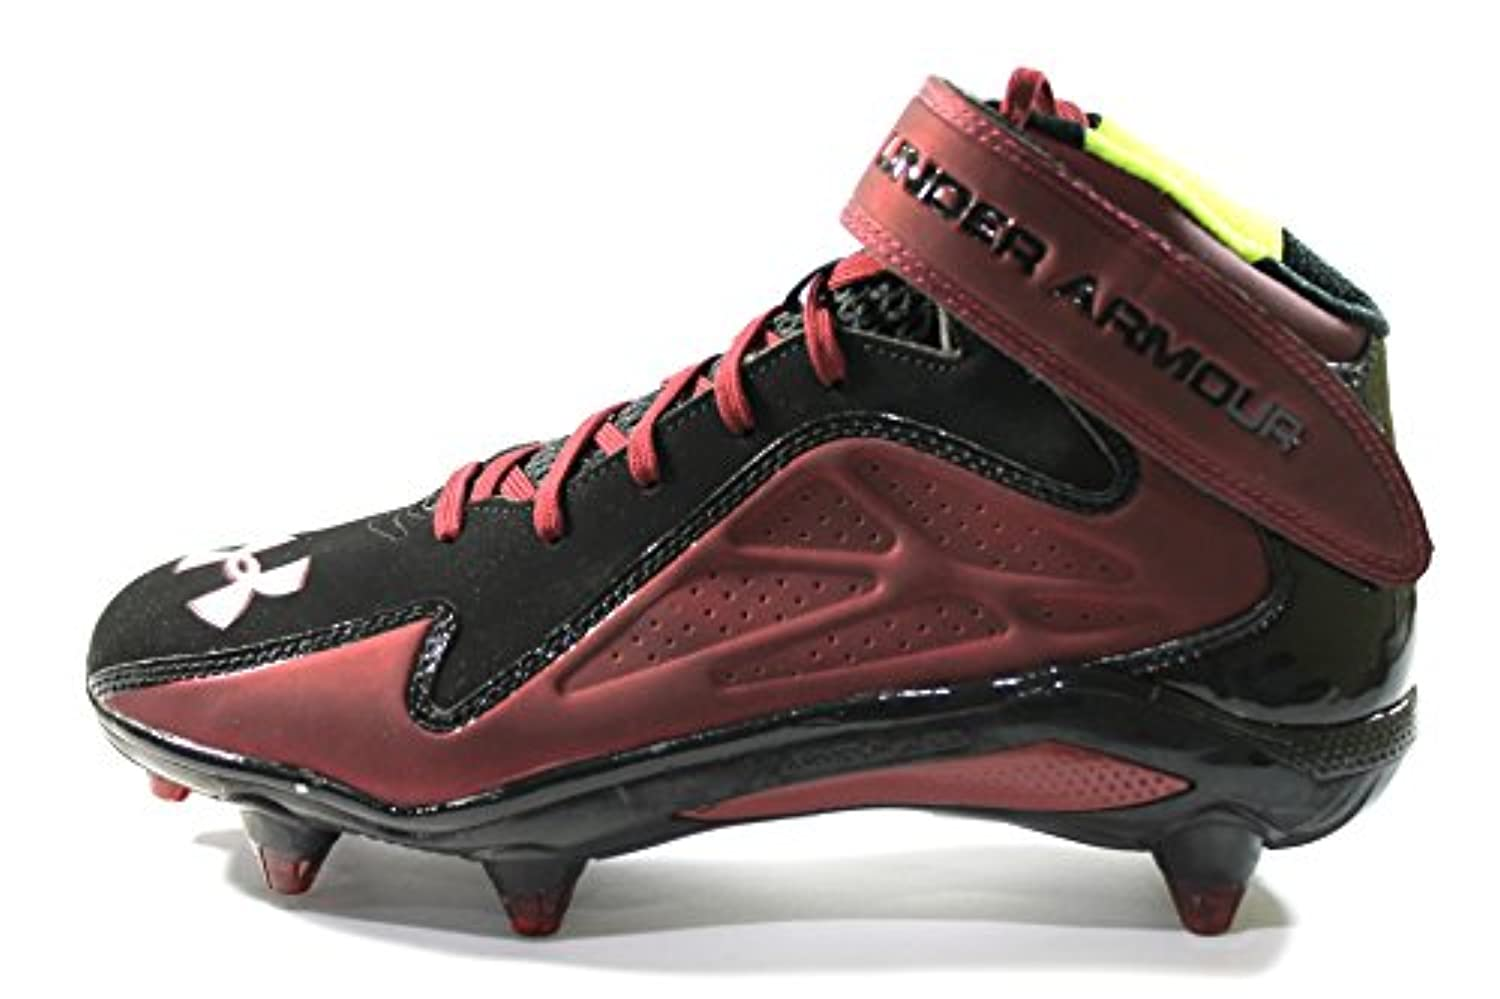 bd7d8851e ... Under Armour Men s Micro G Renegade Mid D Black Maroon Football Cleats  size 10 ...